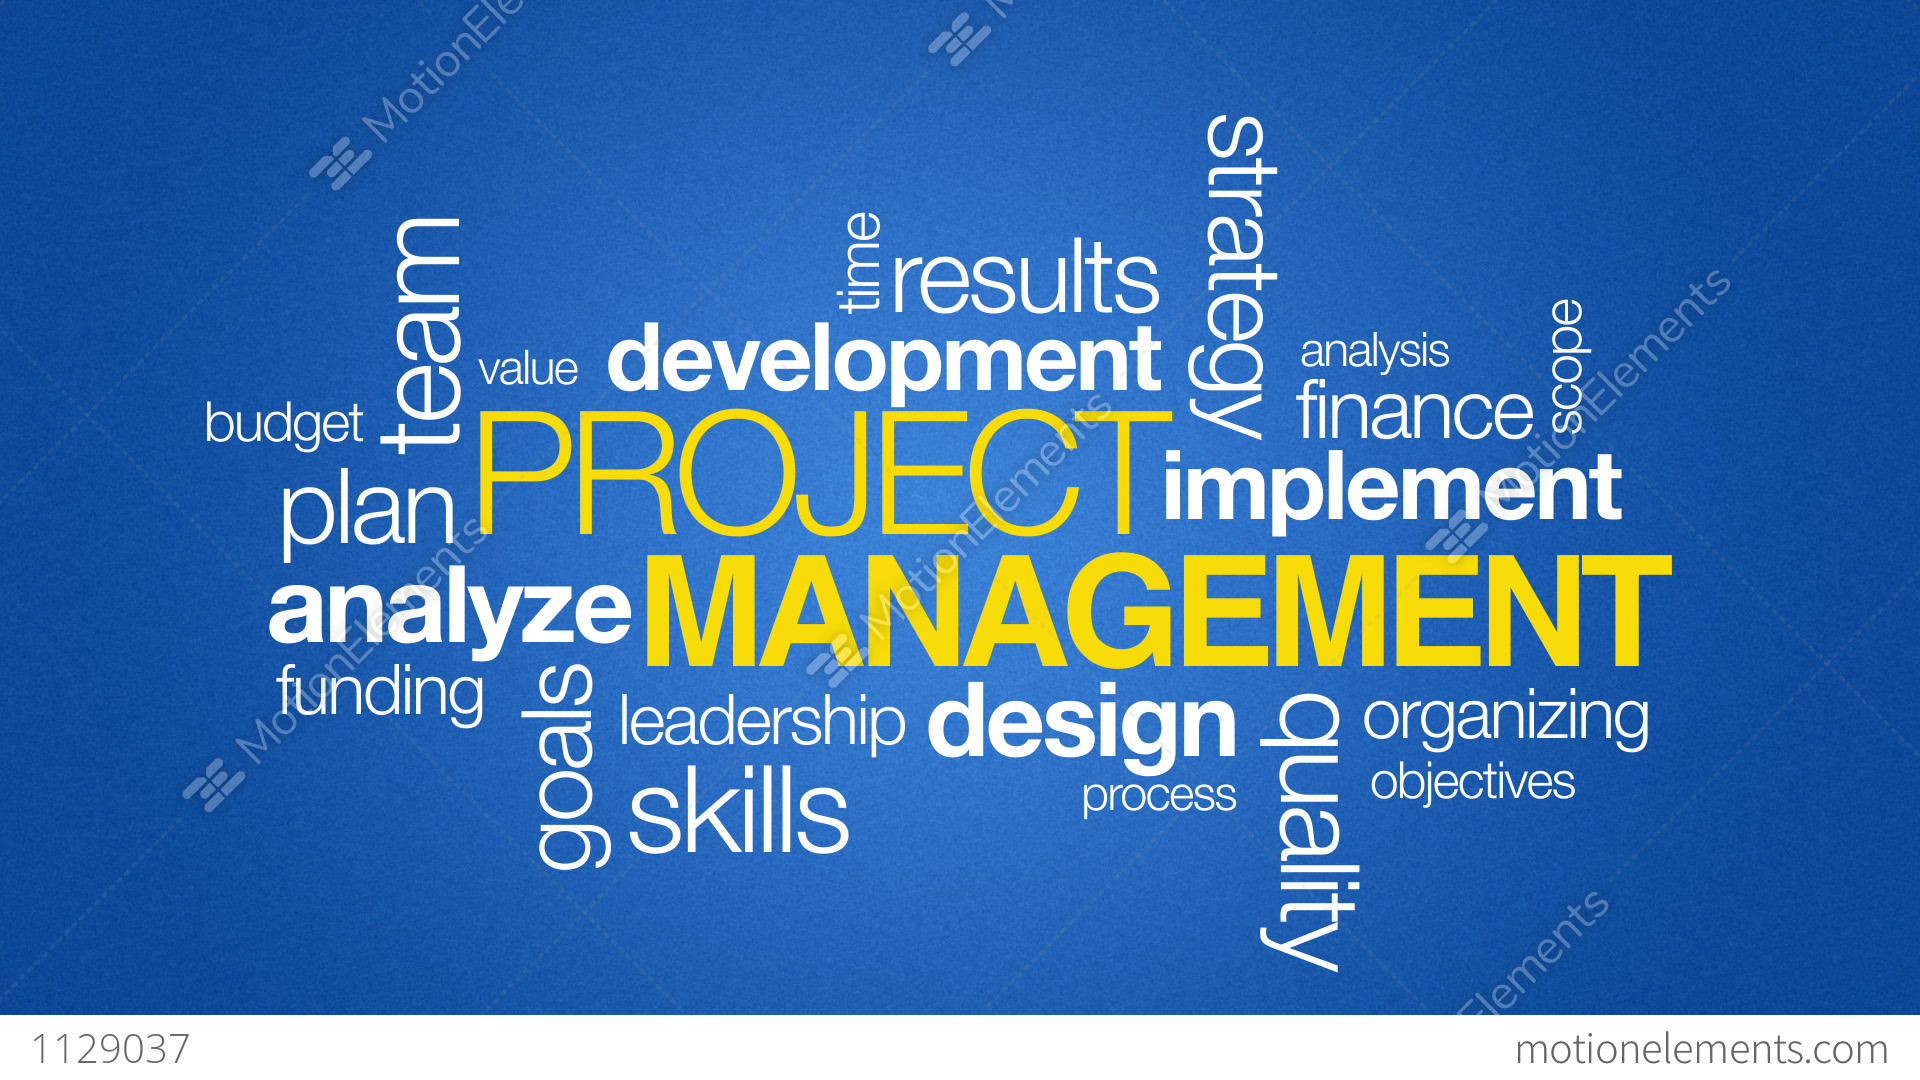 project management in hector gaming company Explores the strategic management process of project management,  152 case study - hector gaming company 151 case study - a day in the life 162 work group.